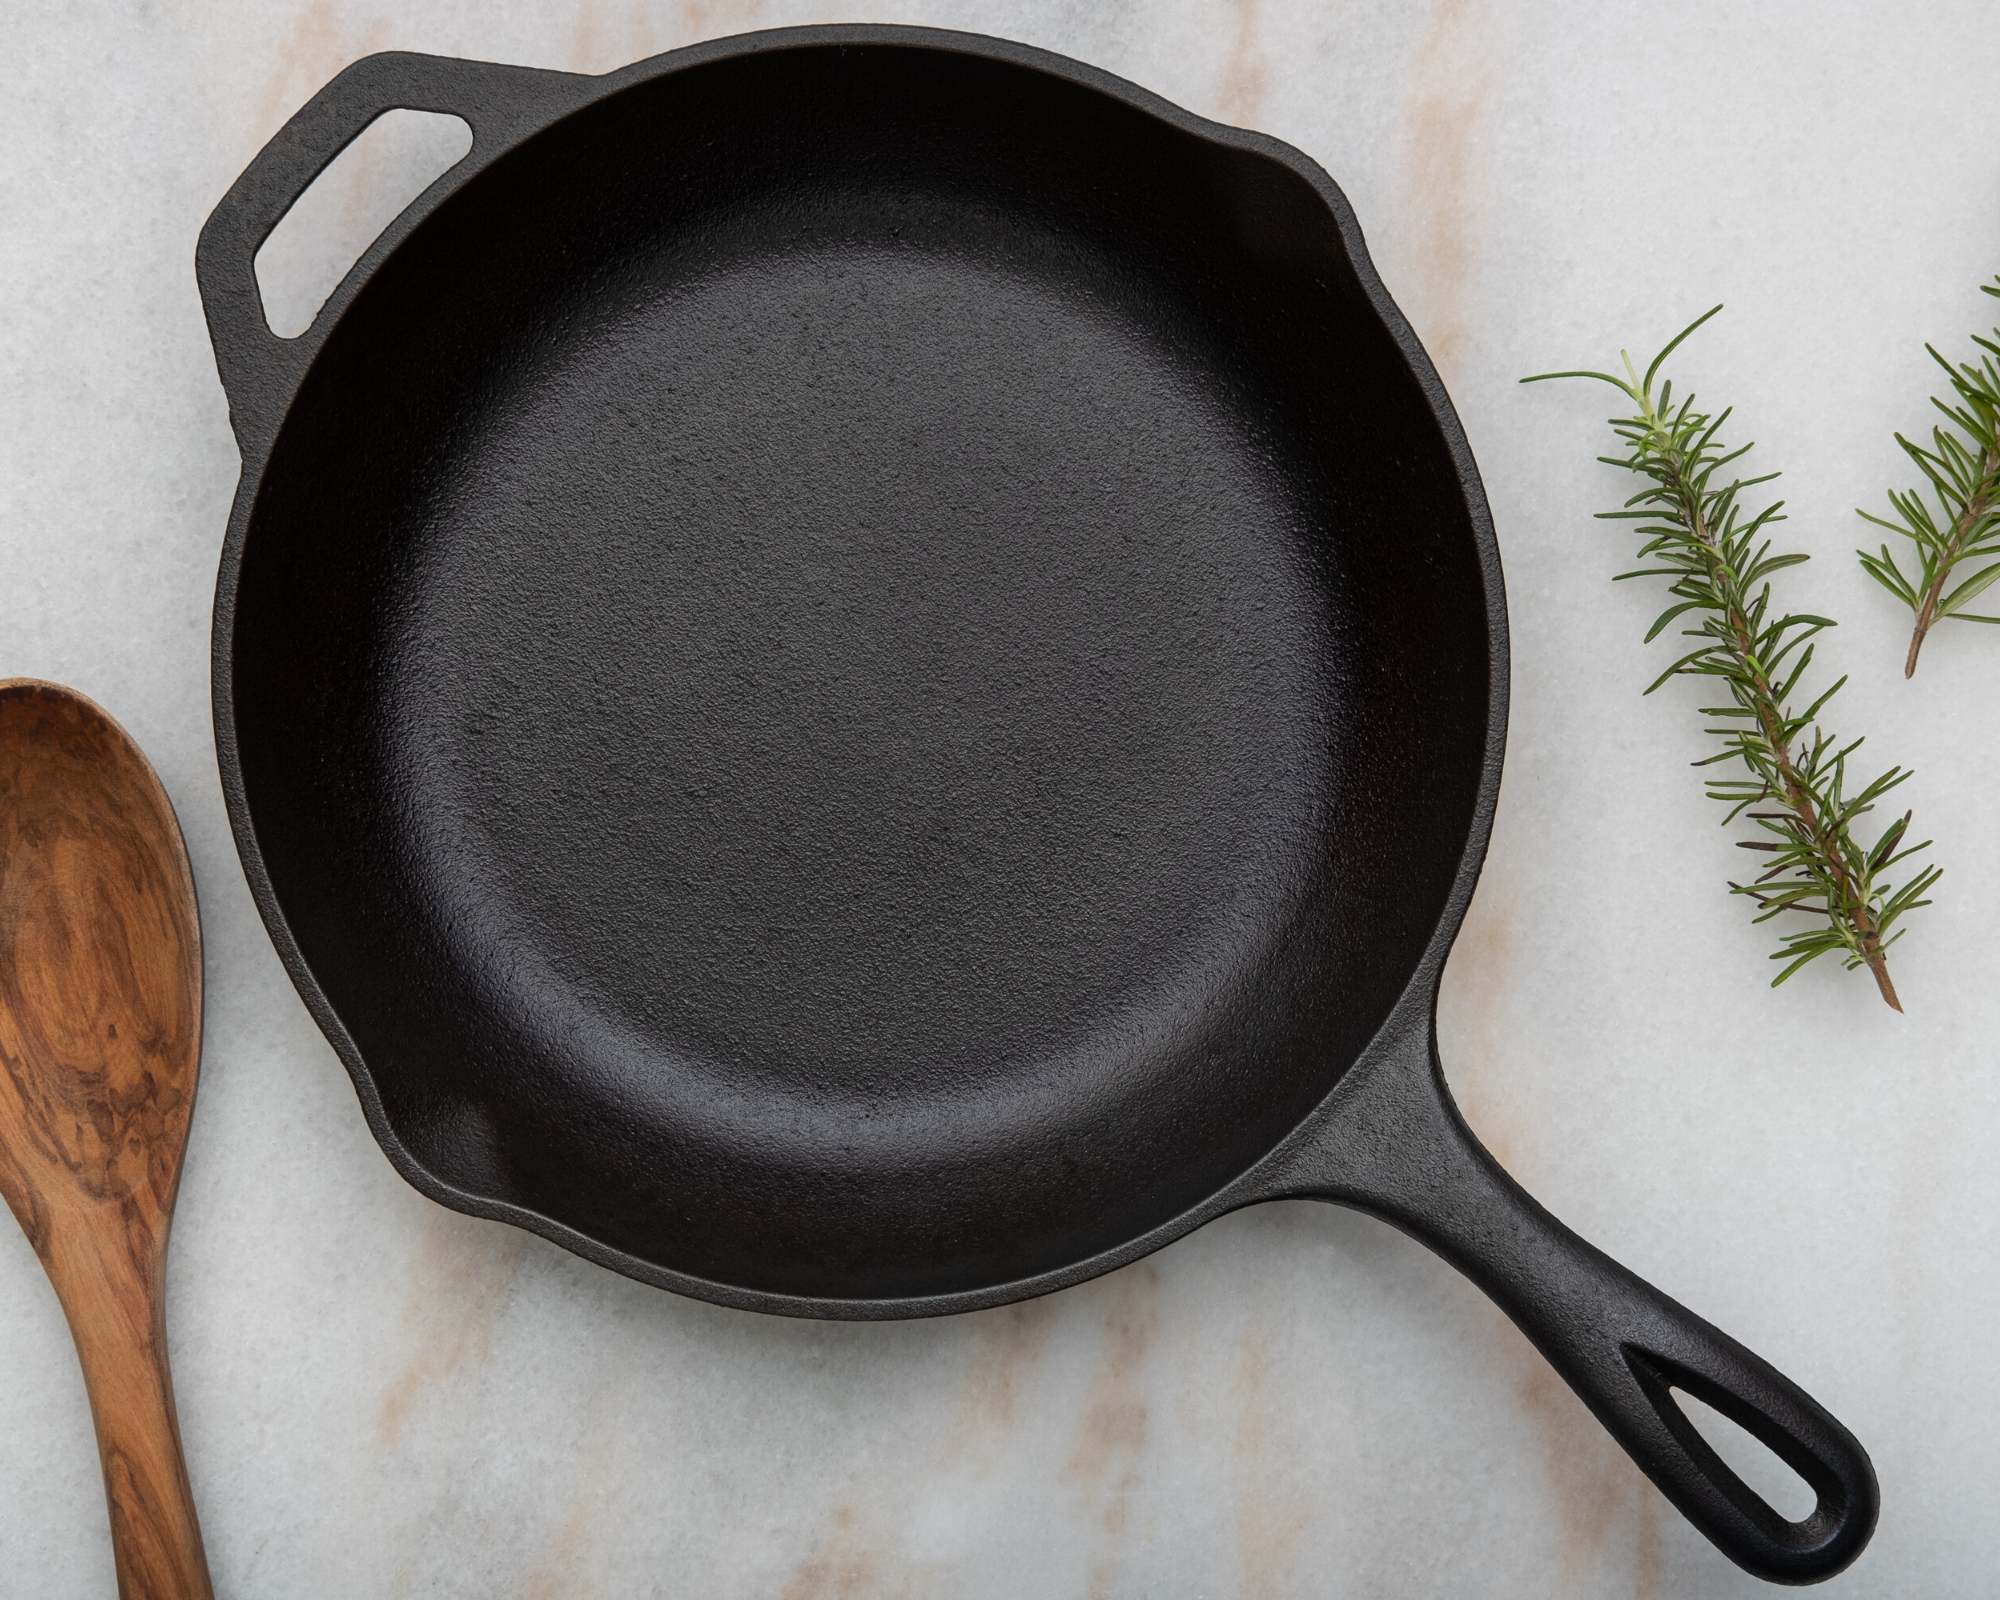 cast iron pan on marble surface with rosemary and wooden spoon